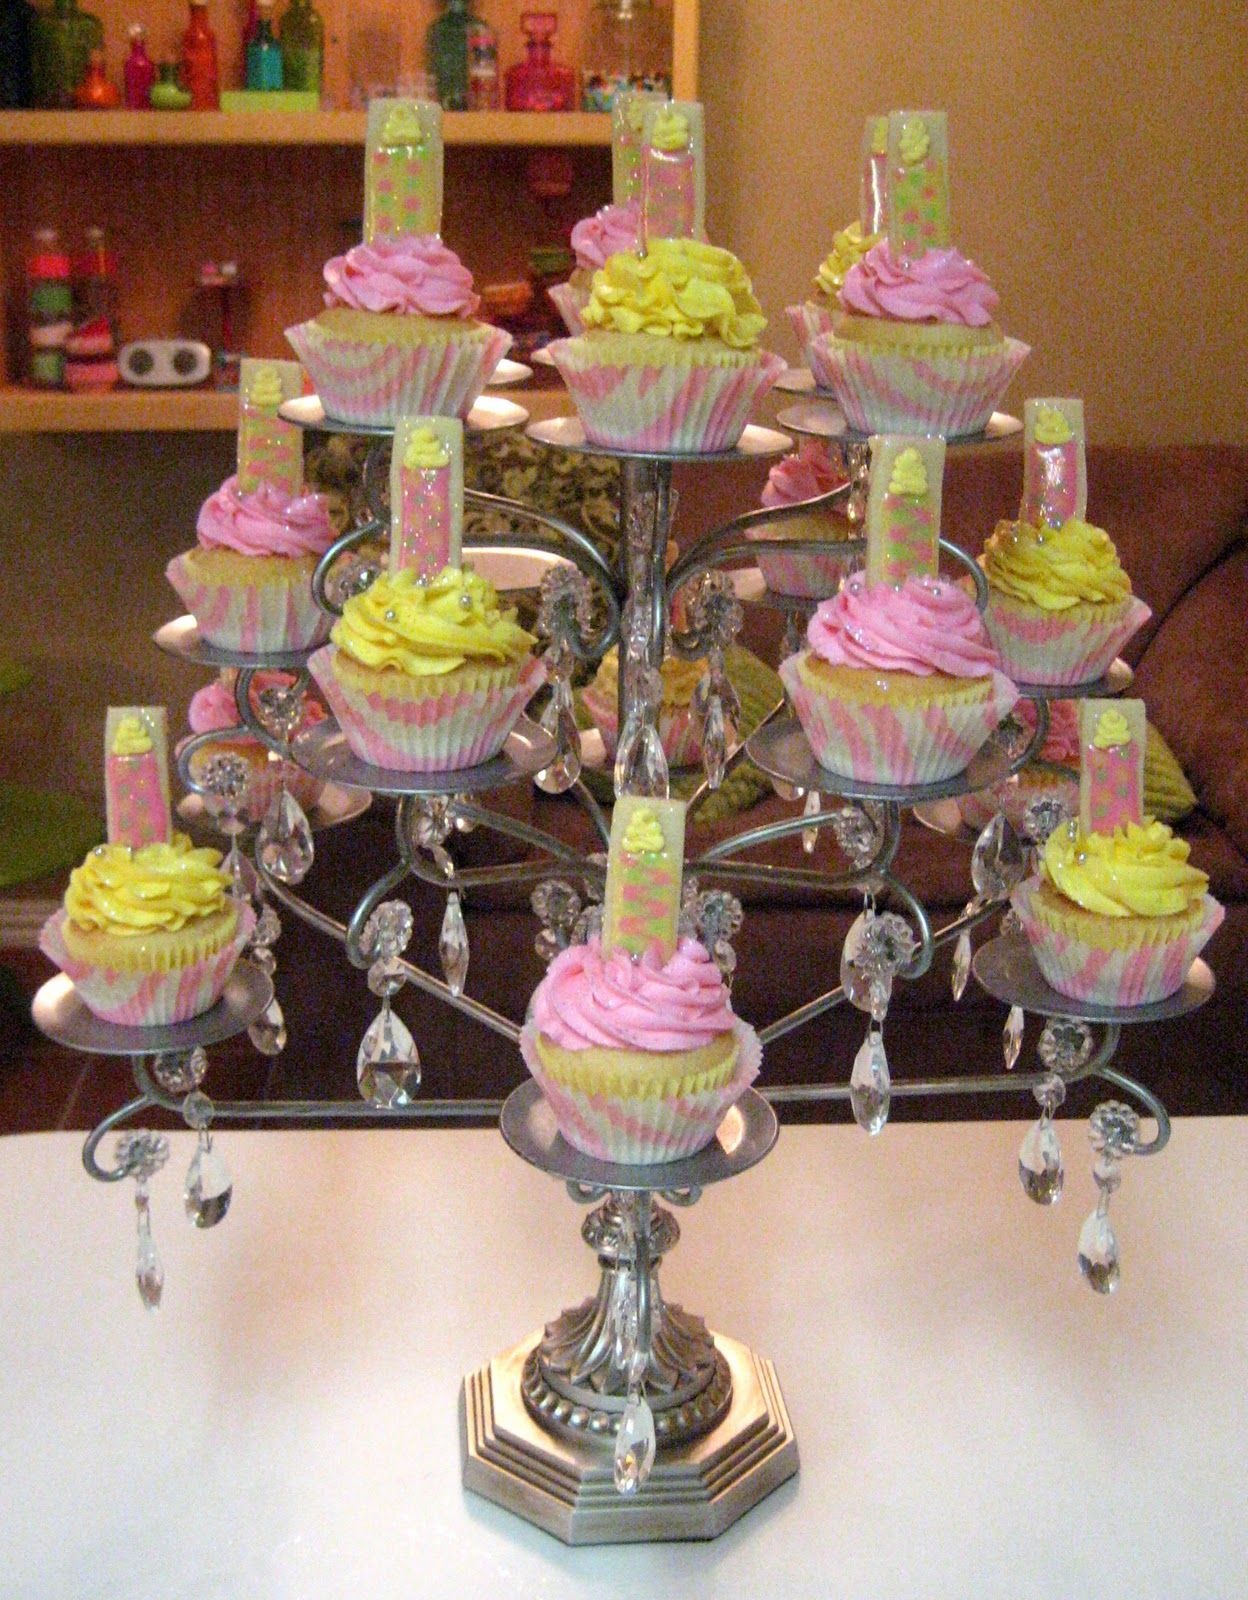 Chandiler cup cake stand ahhh i just love this stand i cant chandelier turned into a cupcake stand hmmm wonder if mine would come out like this arubaitofo Image collections